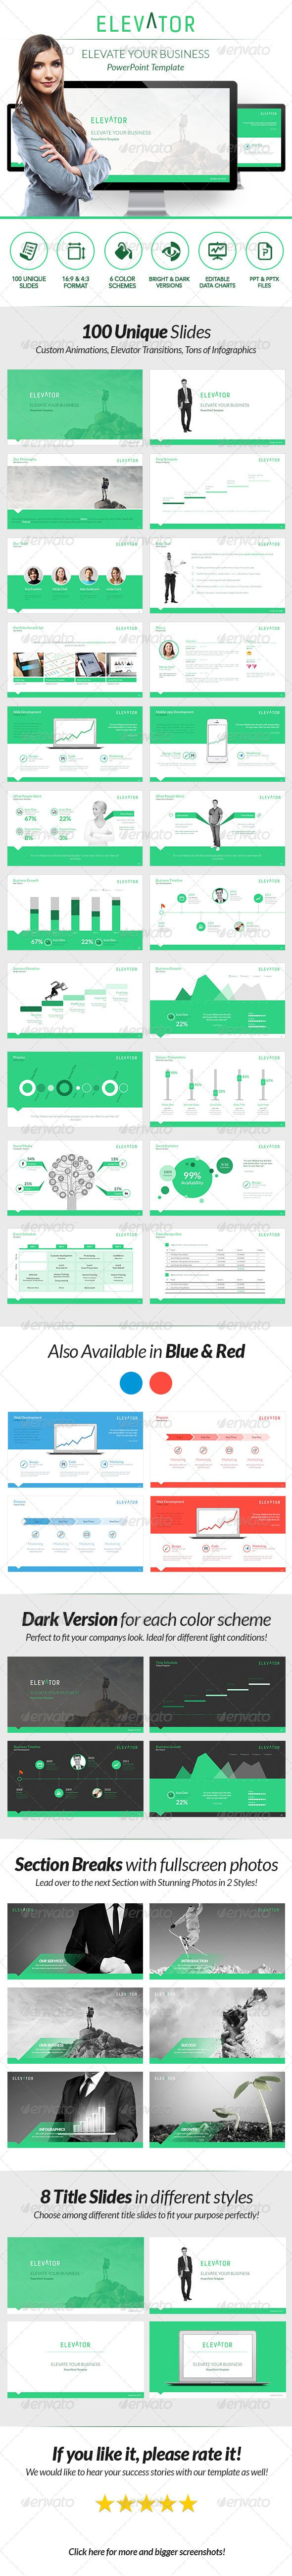 Presentation Templates - Elevator PowerPoint - Elevate Your Business | GraphicRiver